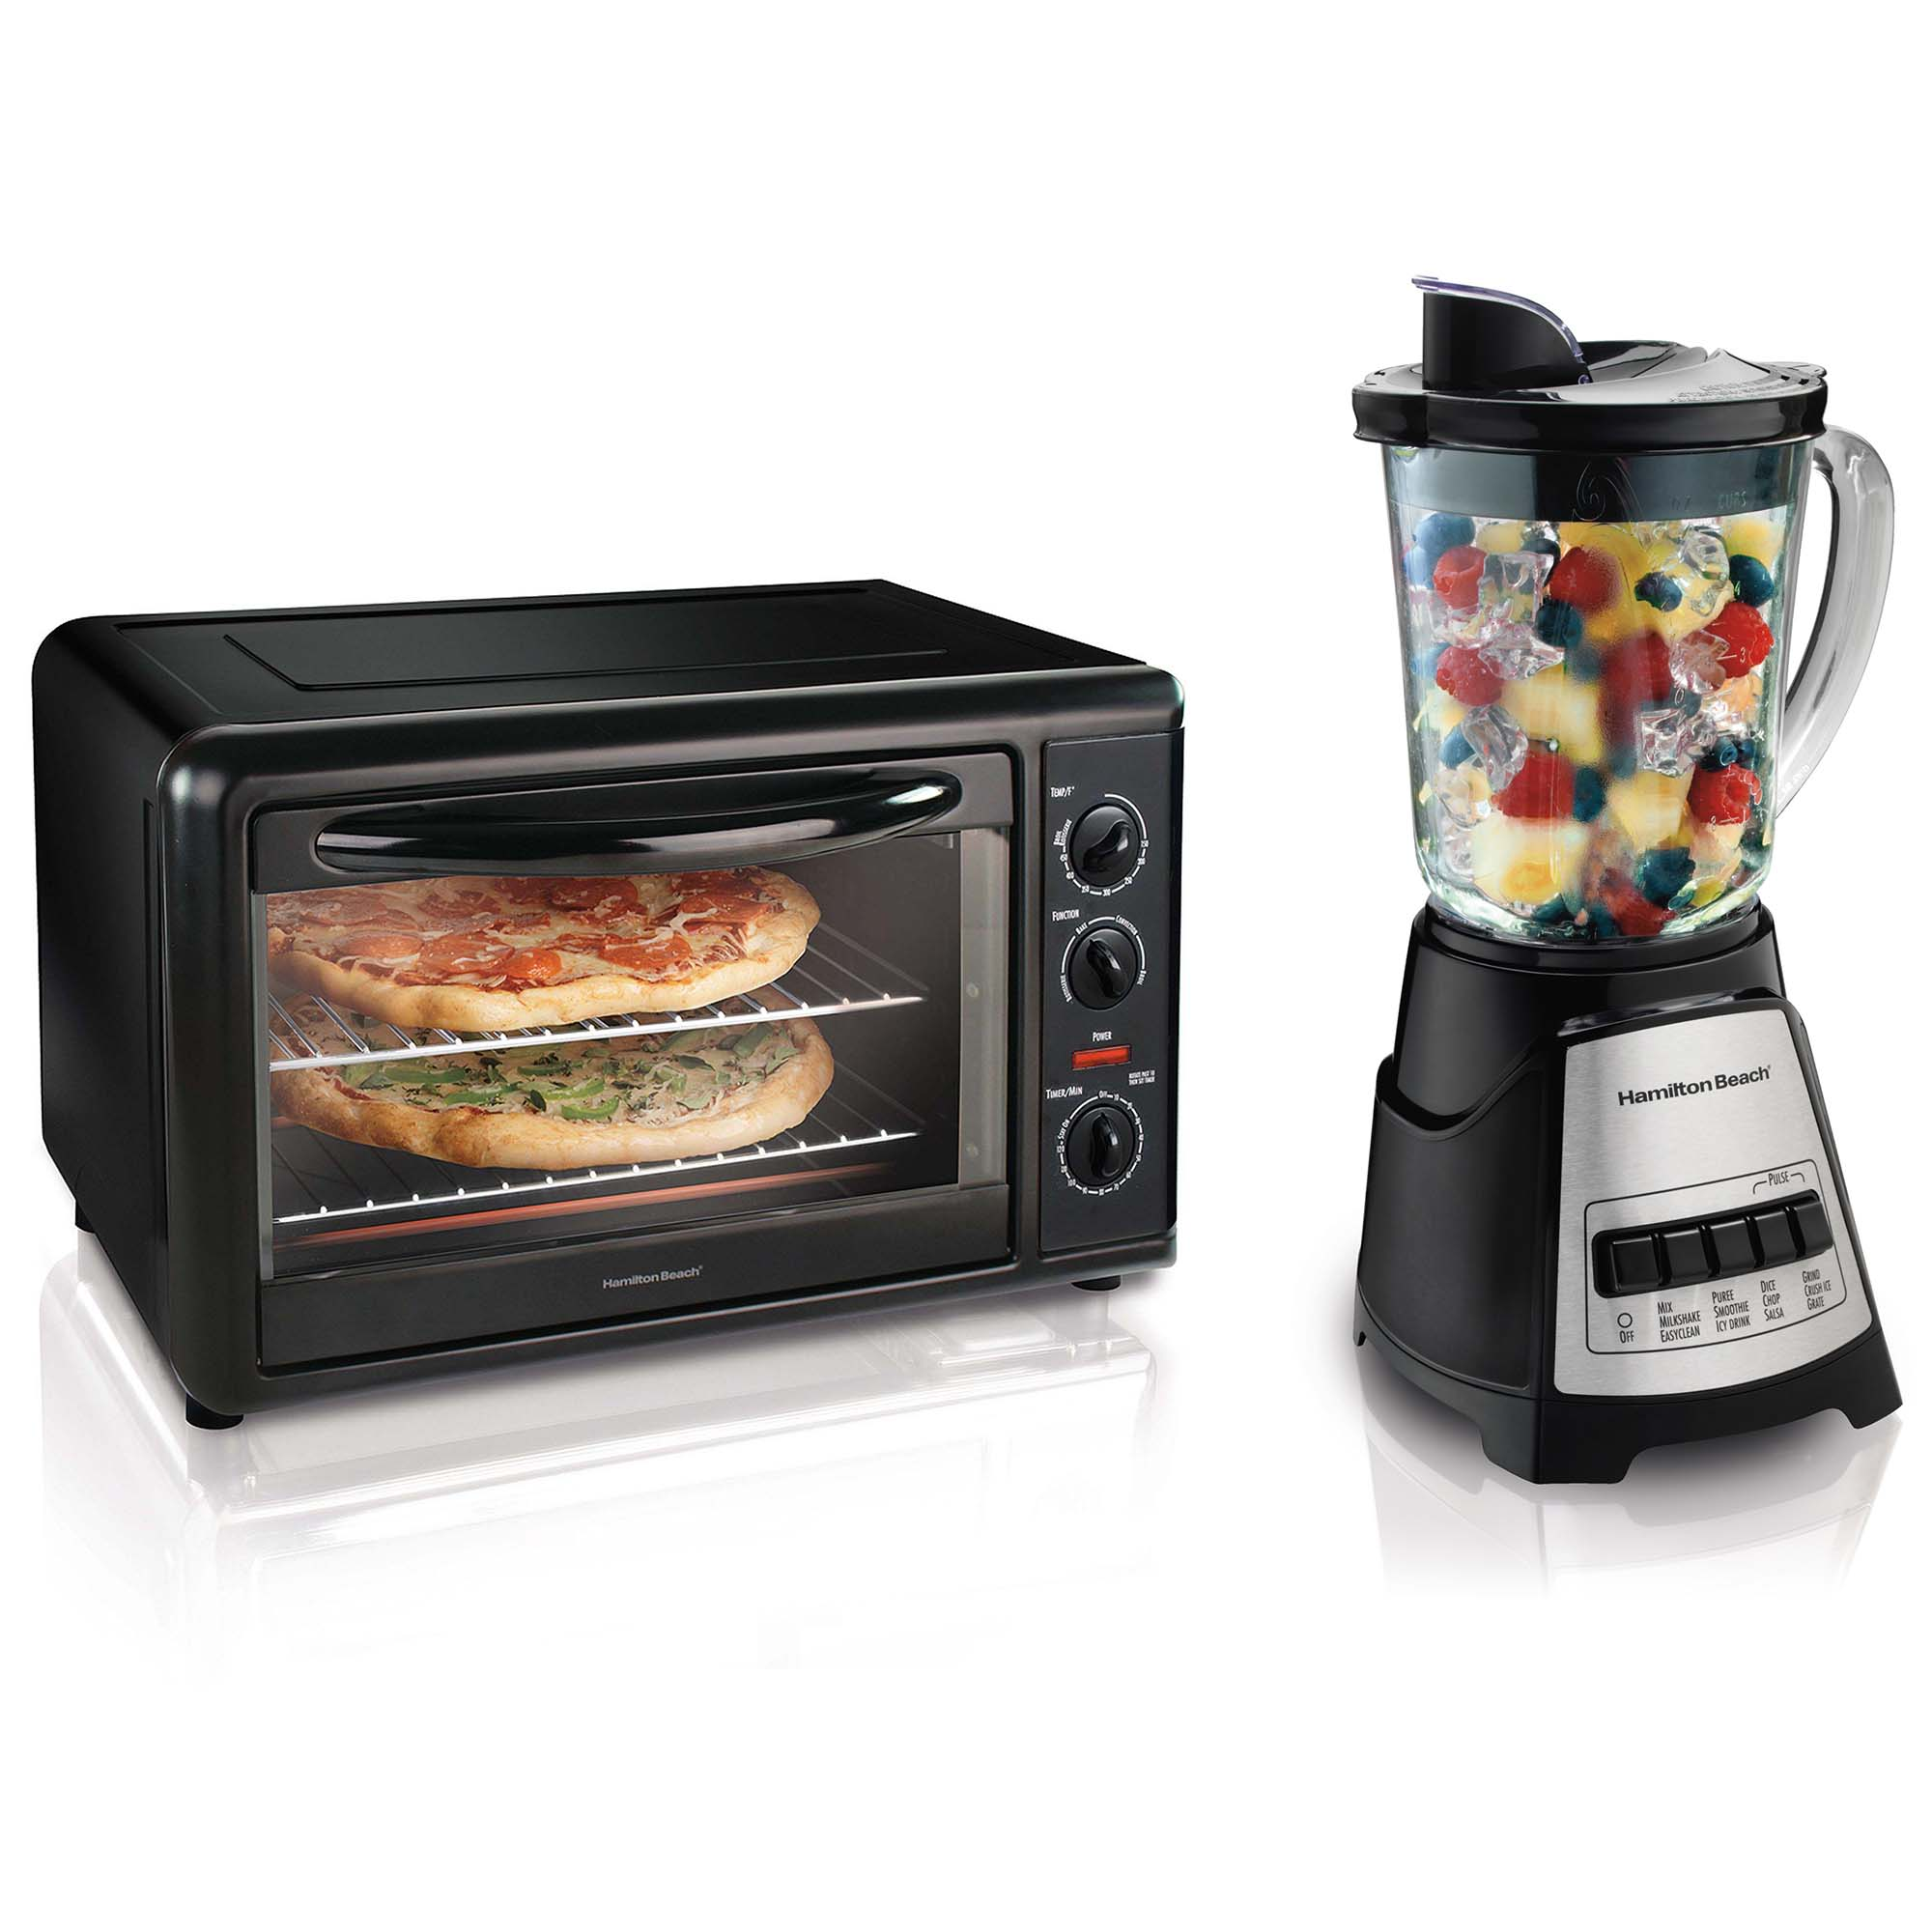 Hamilton Beach Toaster Oven with Convection + Elite Multi-Function Blender